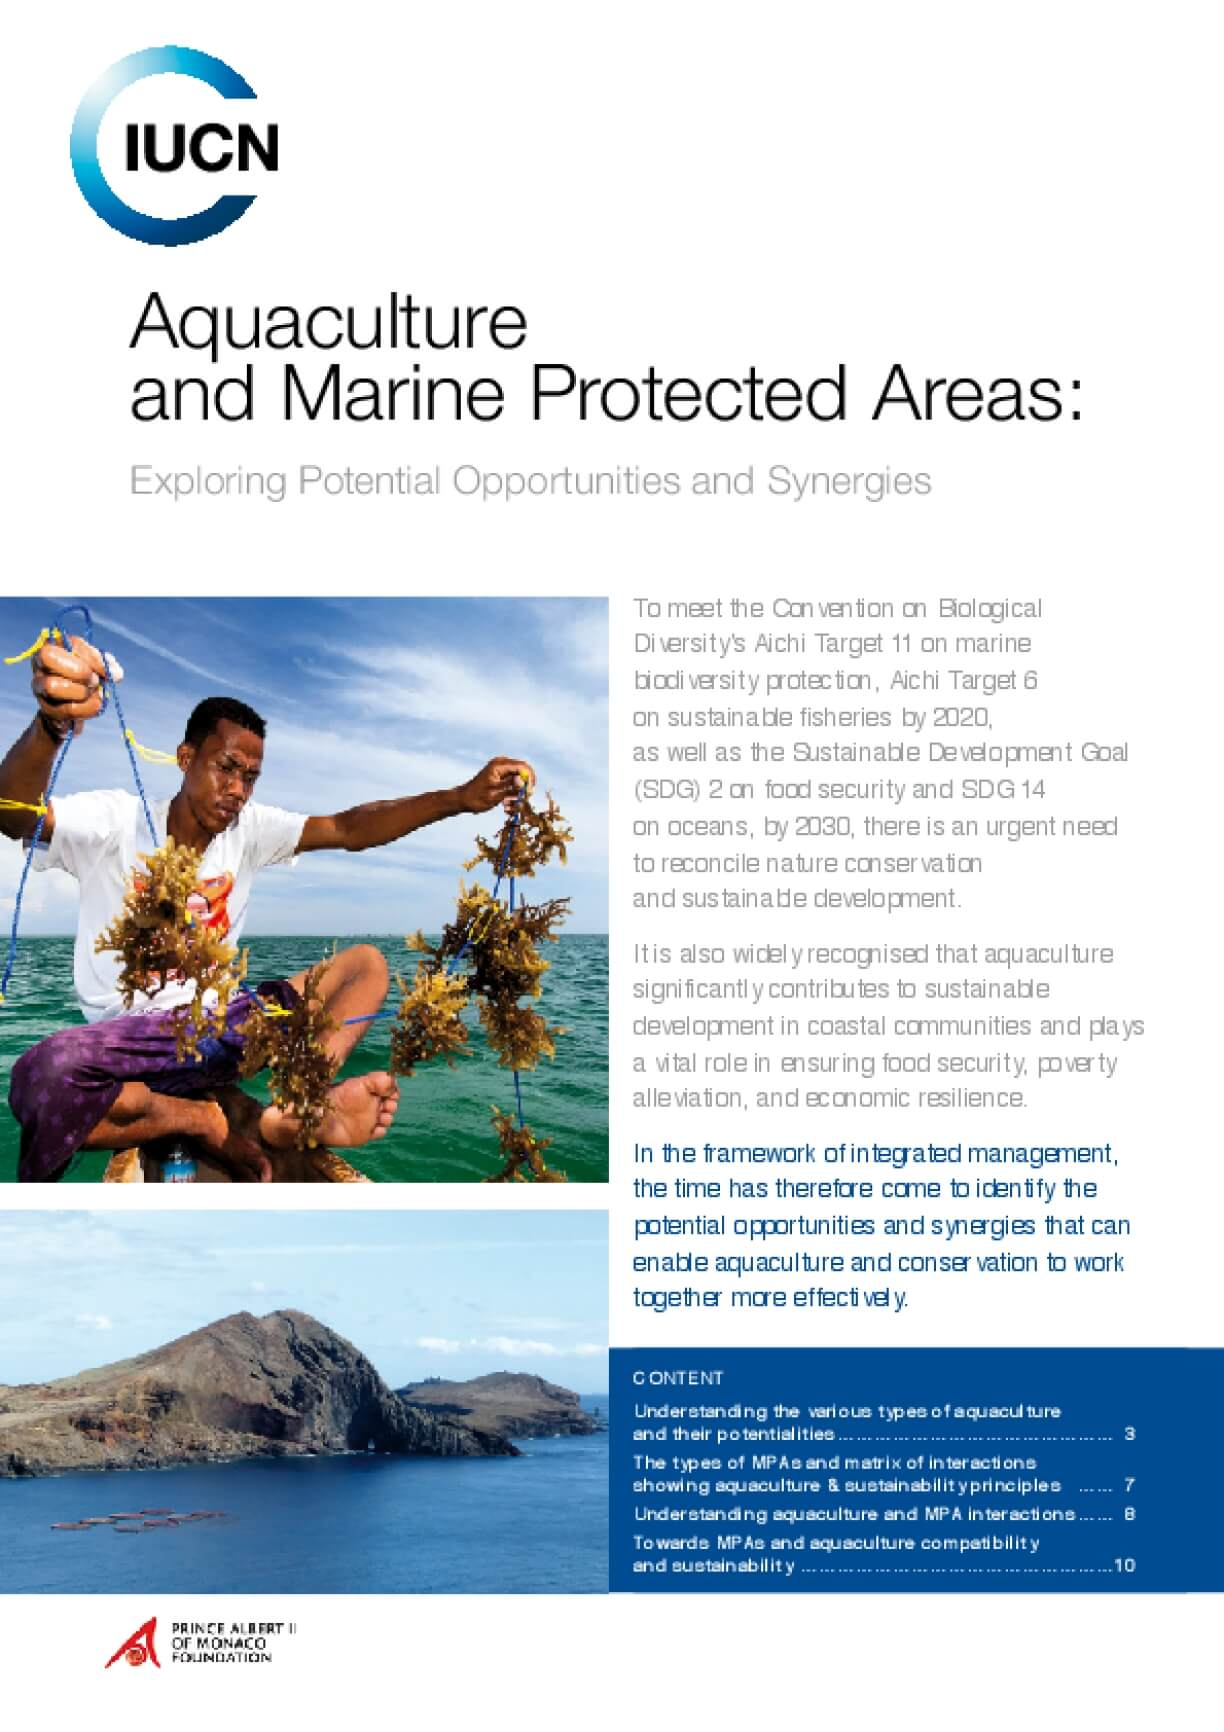 Aquaculture and Marine Protected Areas: Exploring Potential Opportunities and Synergies